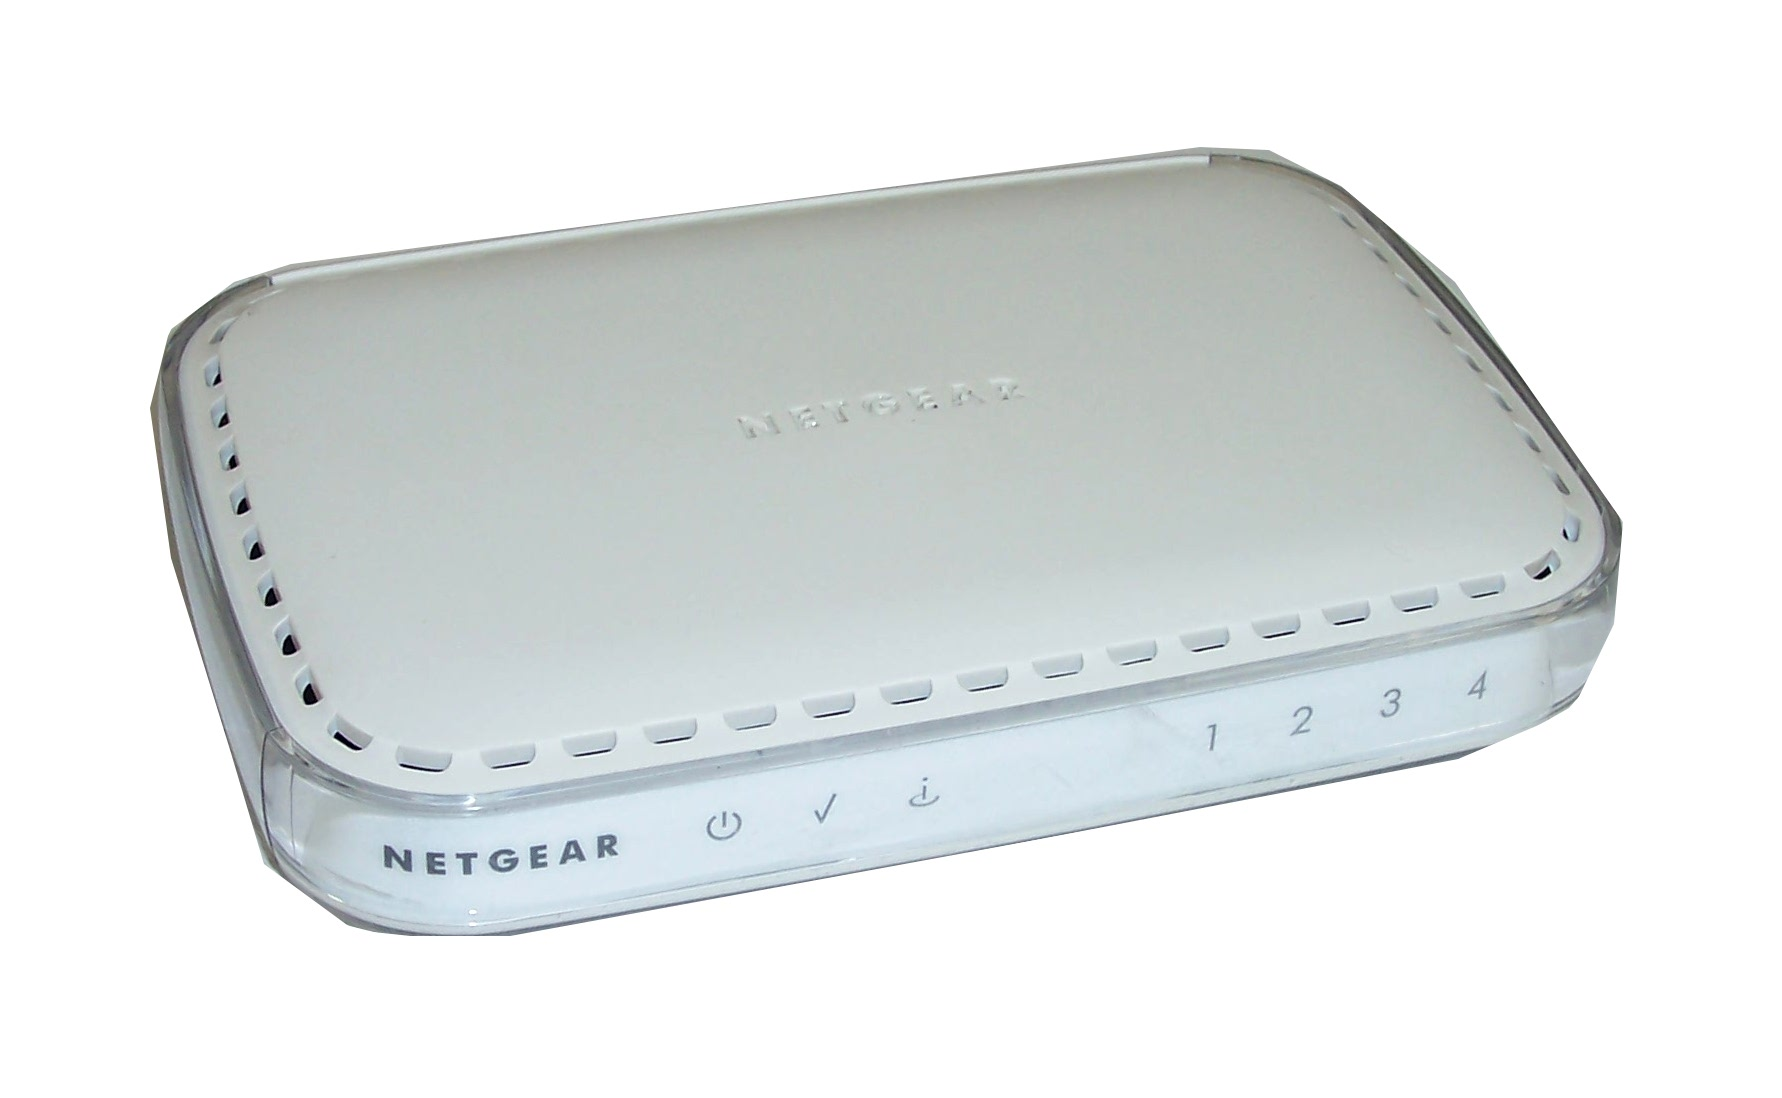 Netgear DG834 v3 ADSL Wired Modem Router- No Power Supply | Switches ...